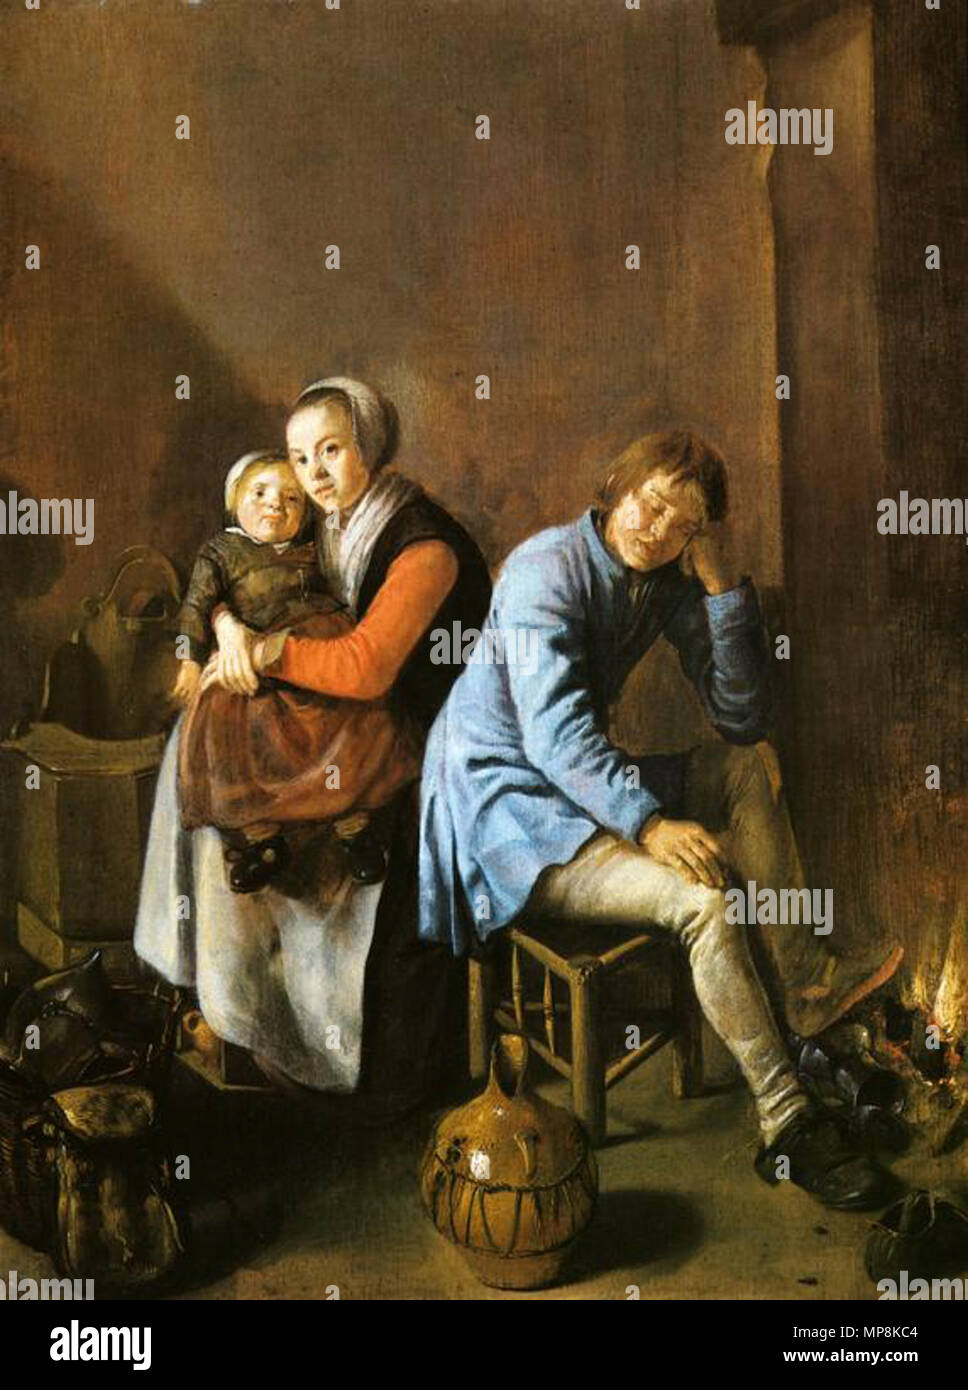 English: A soldier's family   circa 1633  Judith Leyster